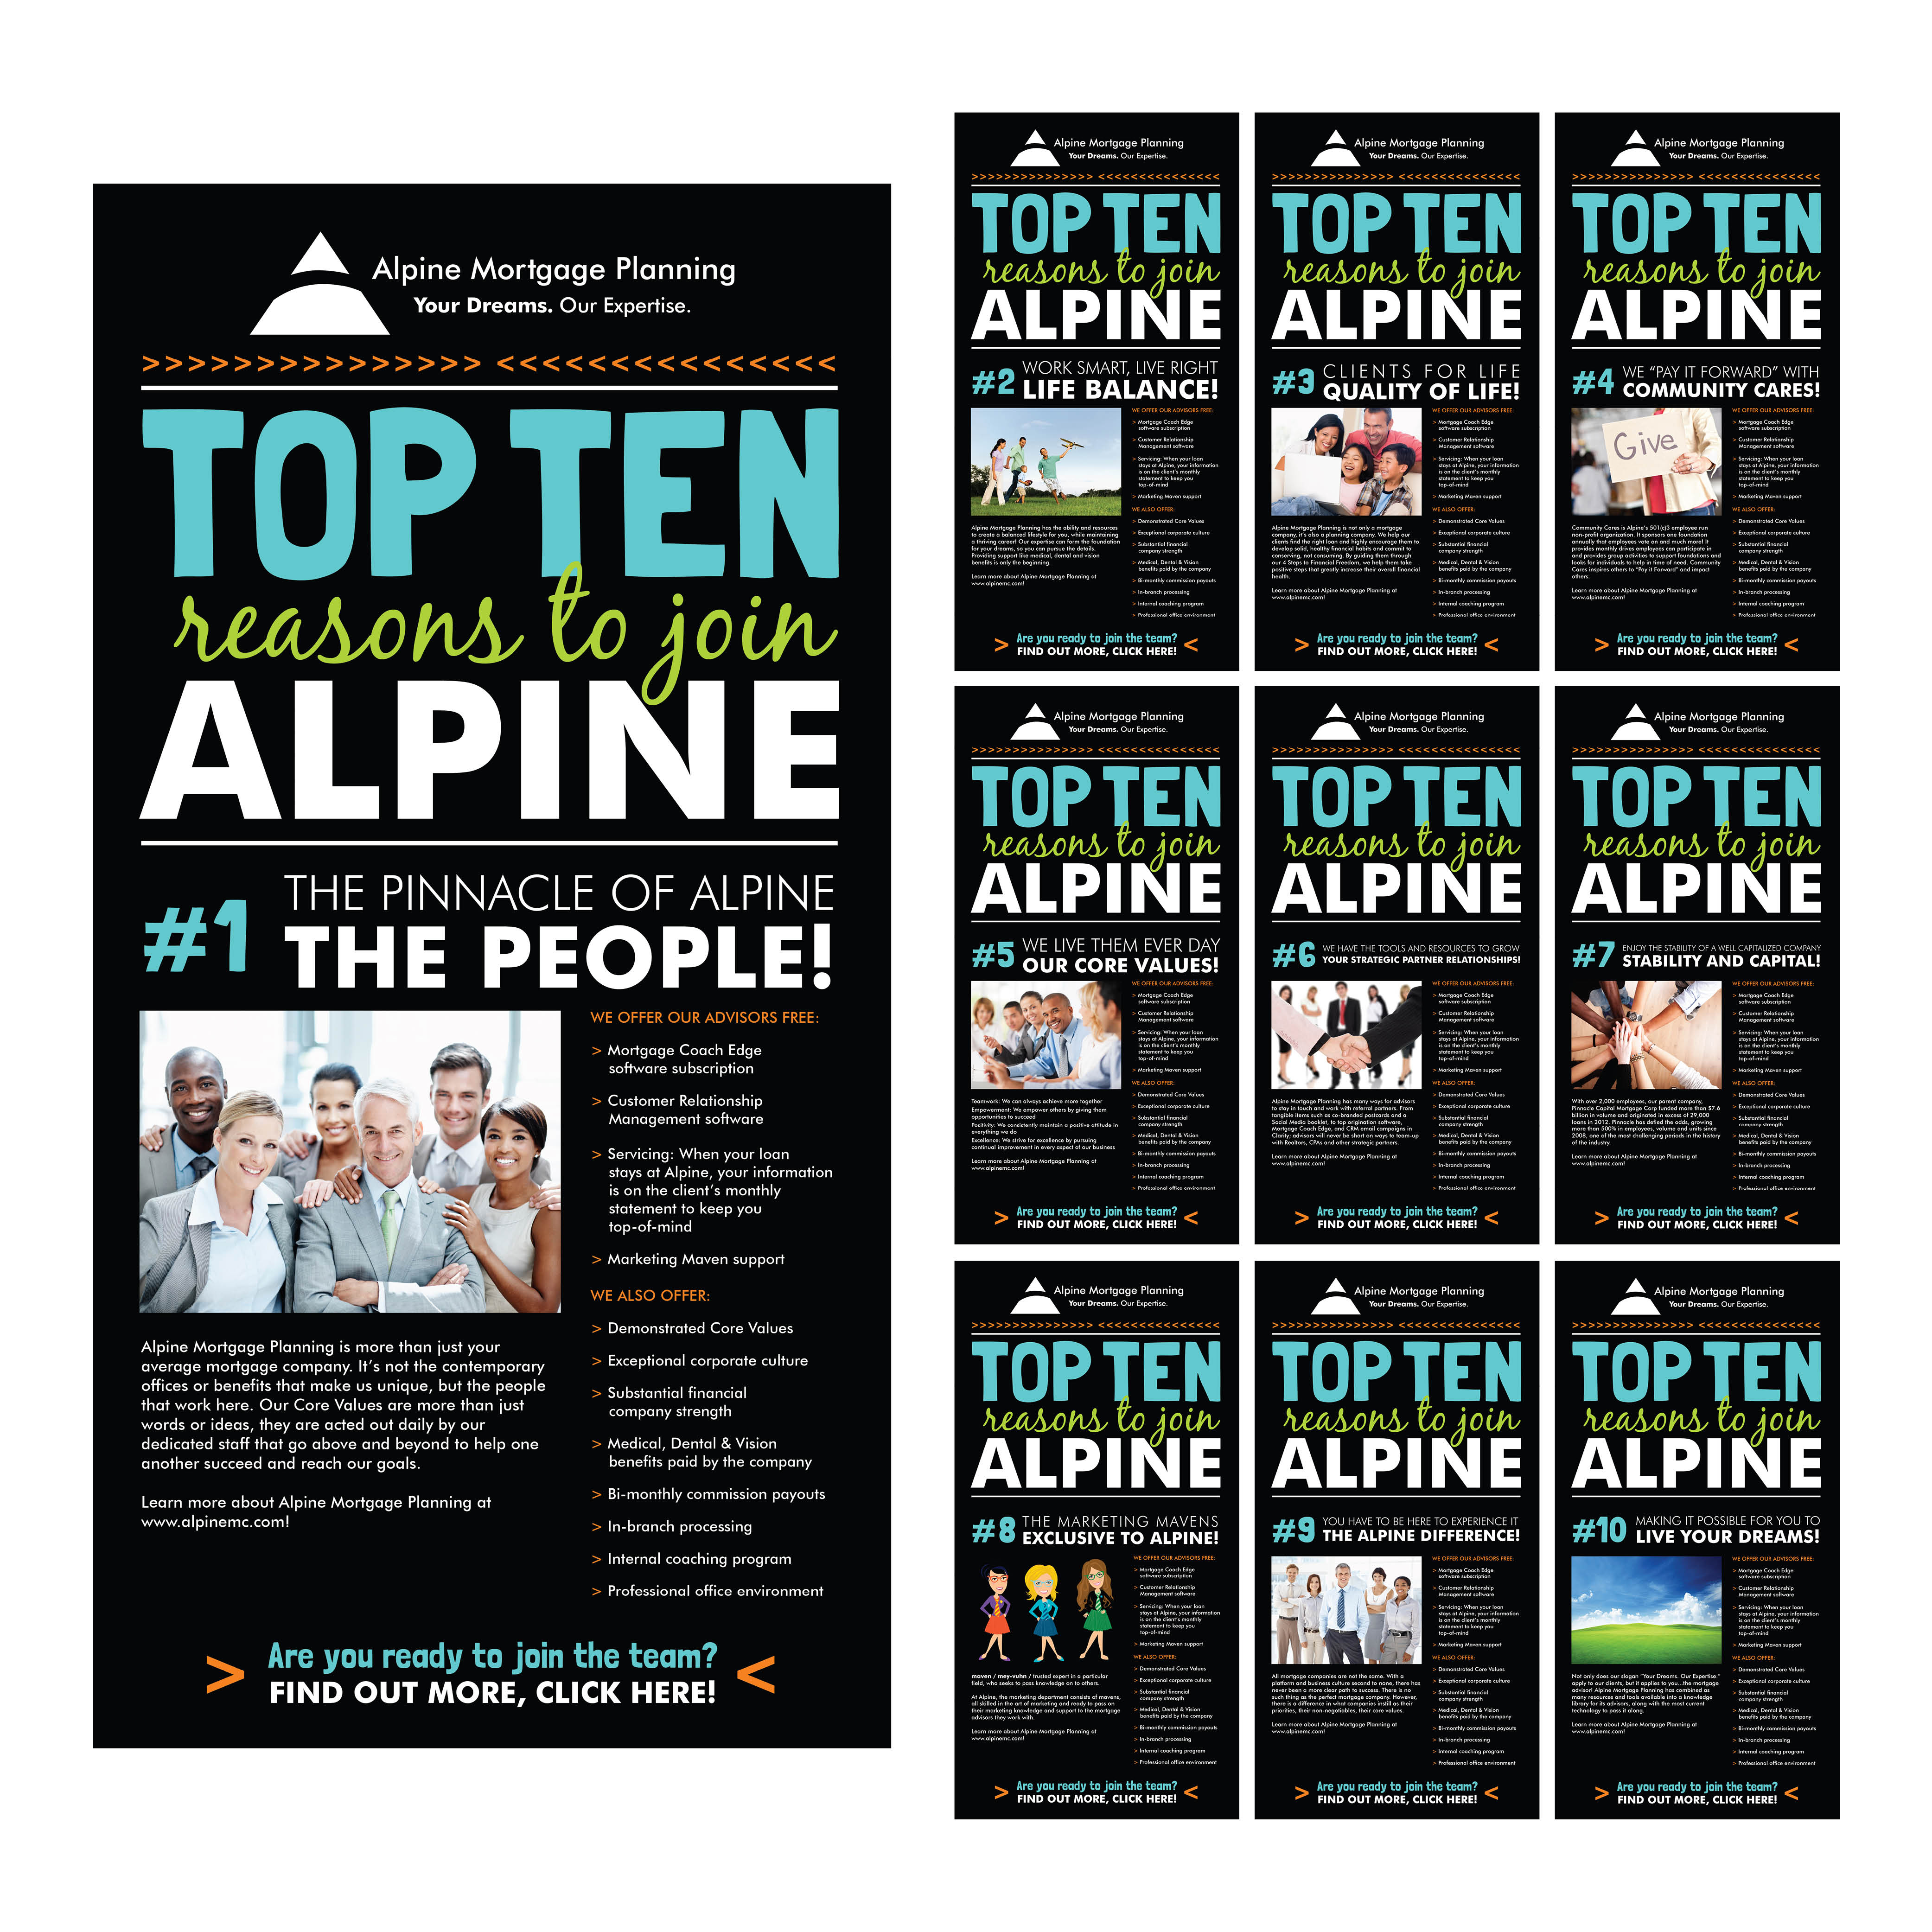 TOP TEN REASONS TO JOIN ALPINE